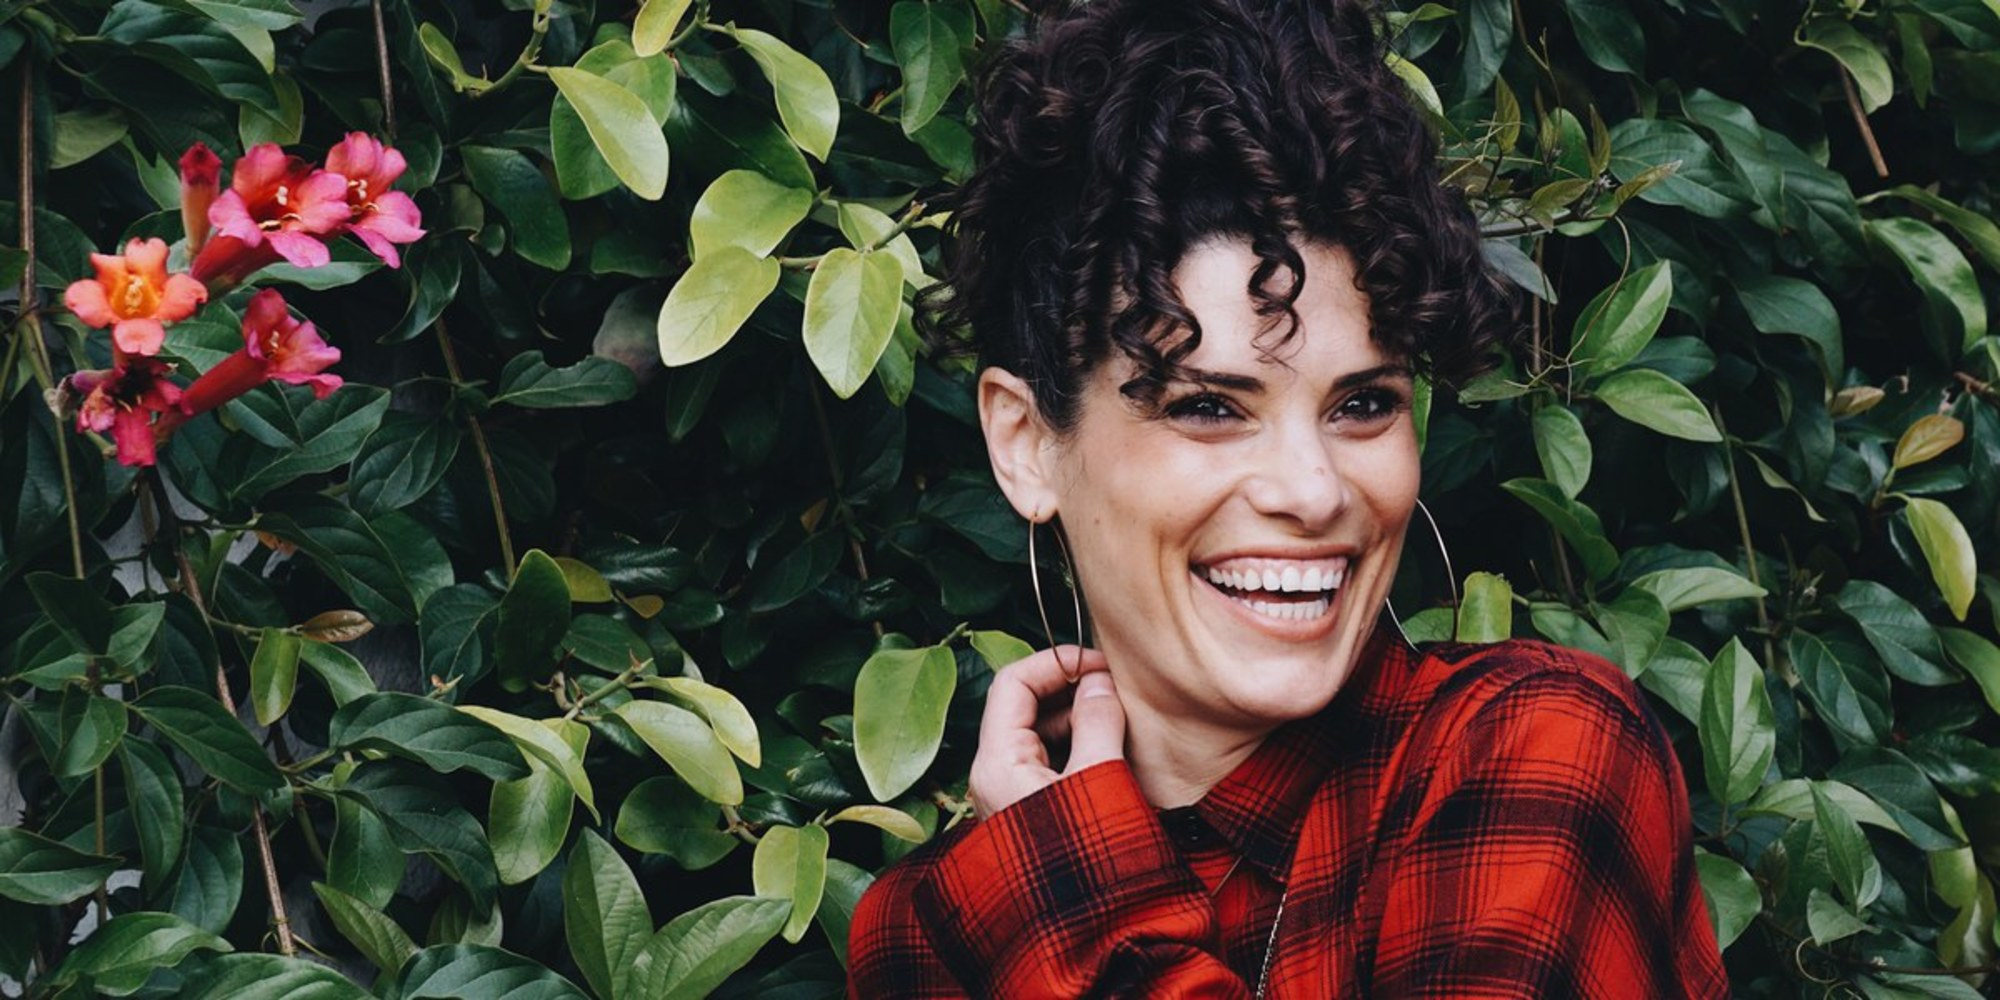 smiling woman in red plaid shirt in front of a bright green hedge